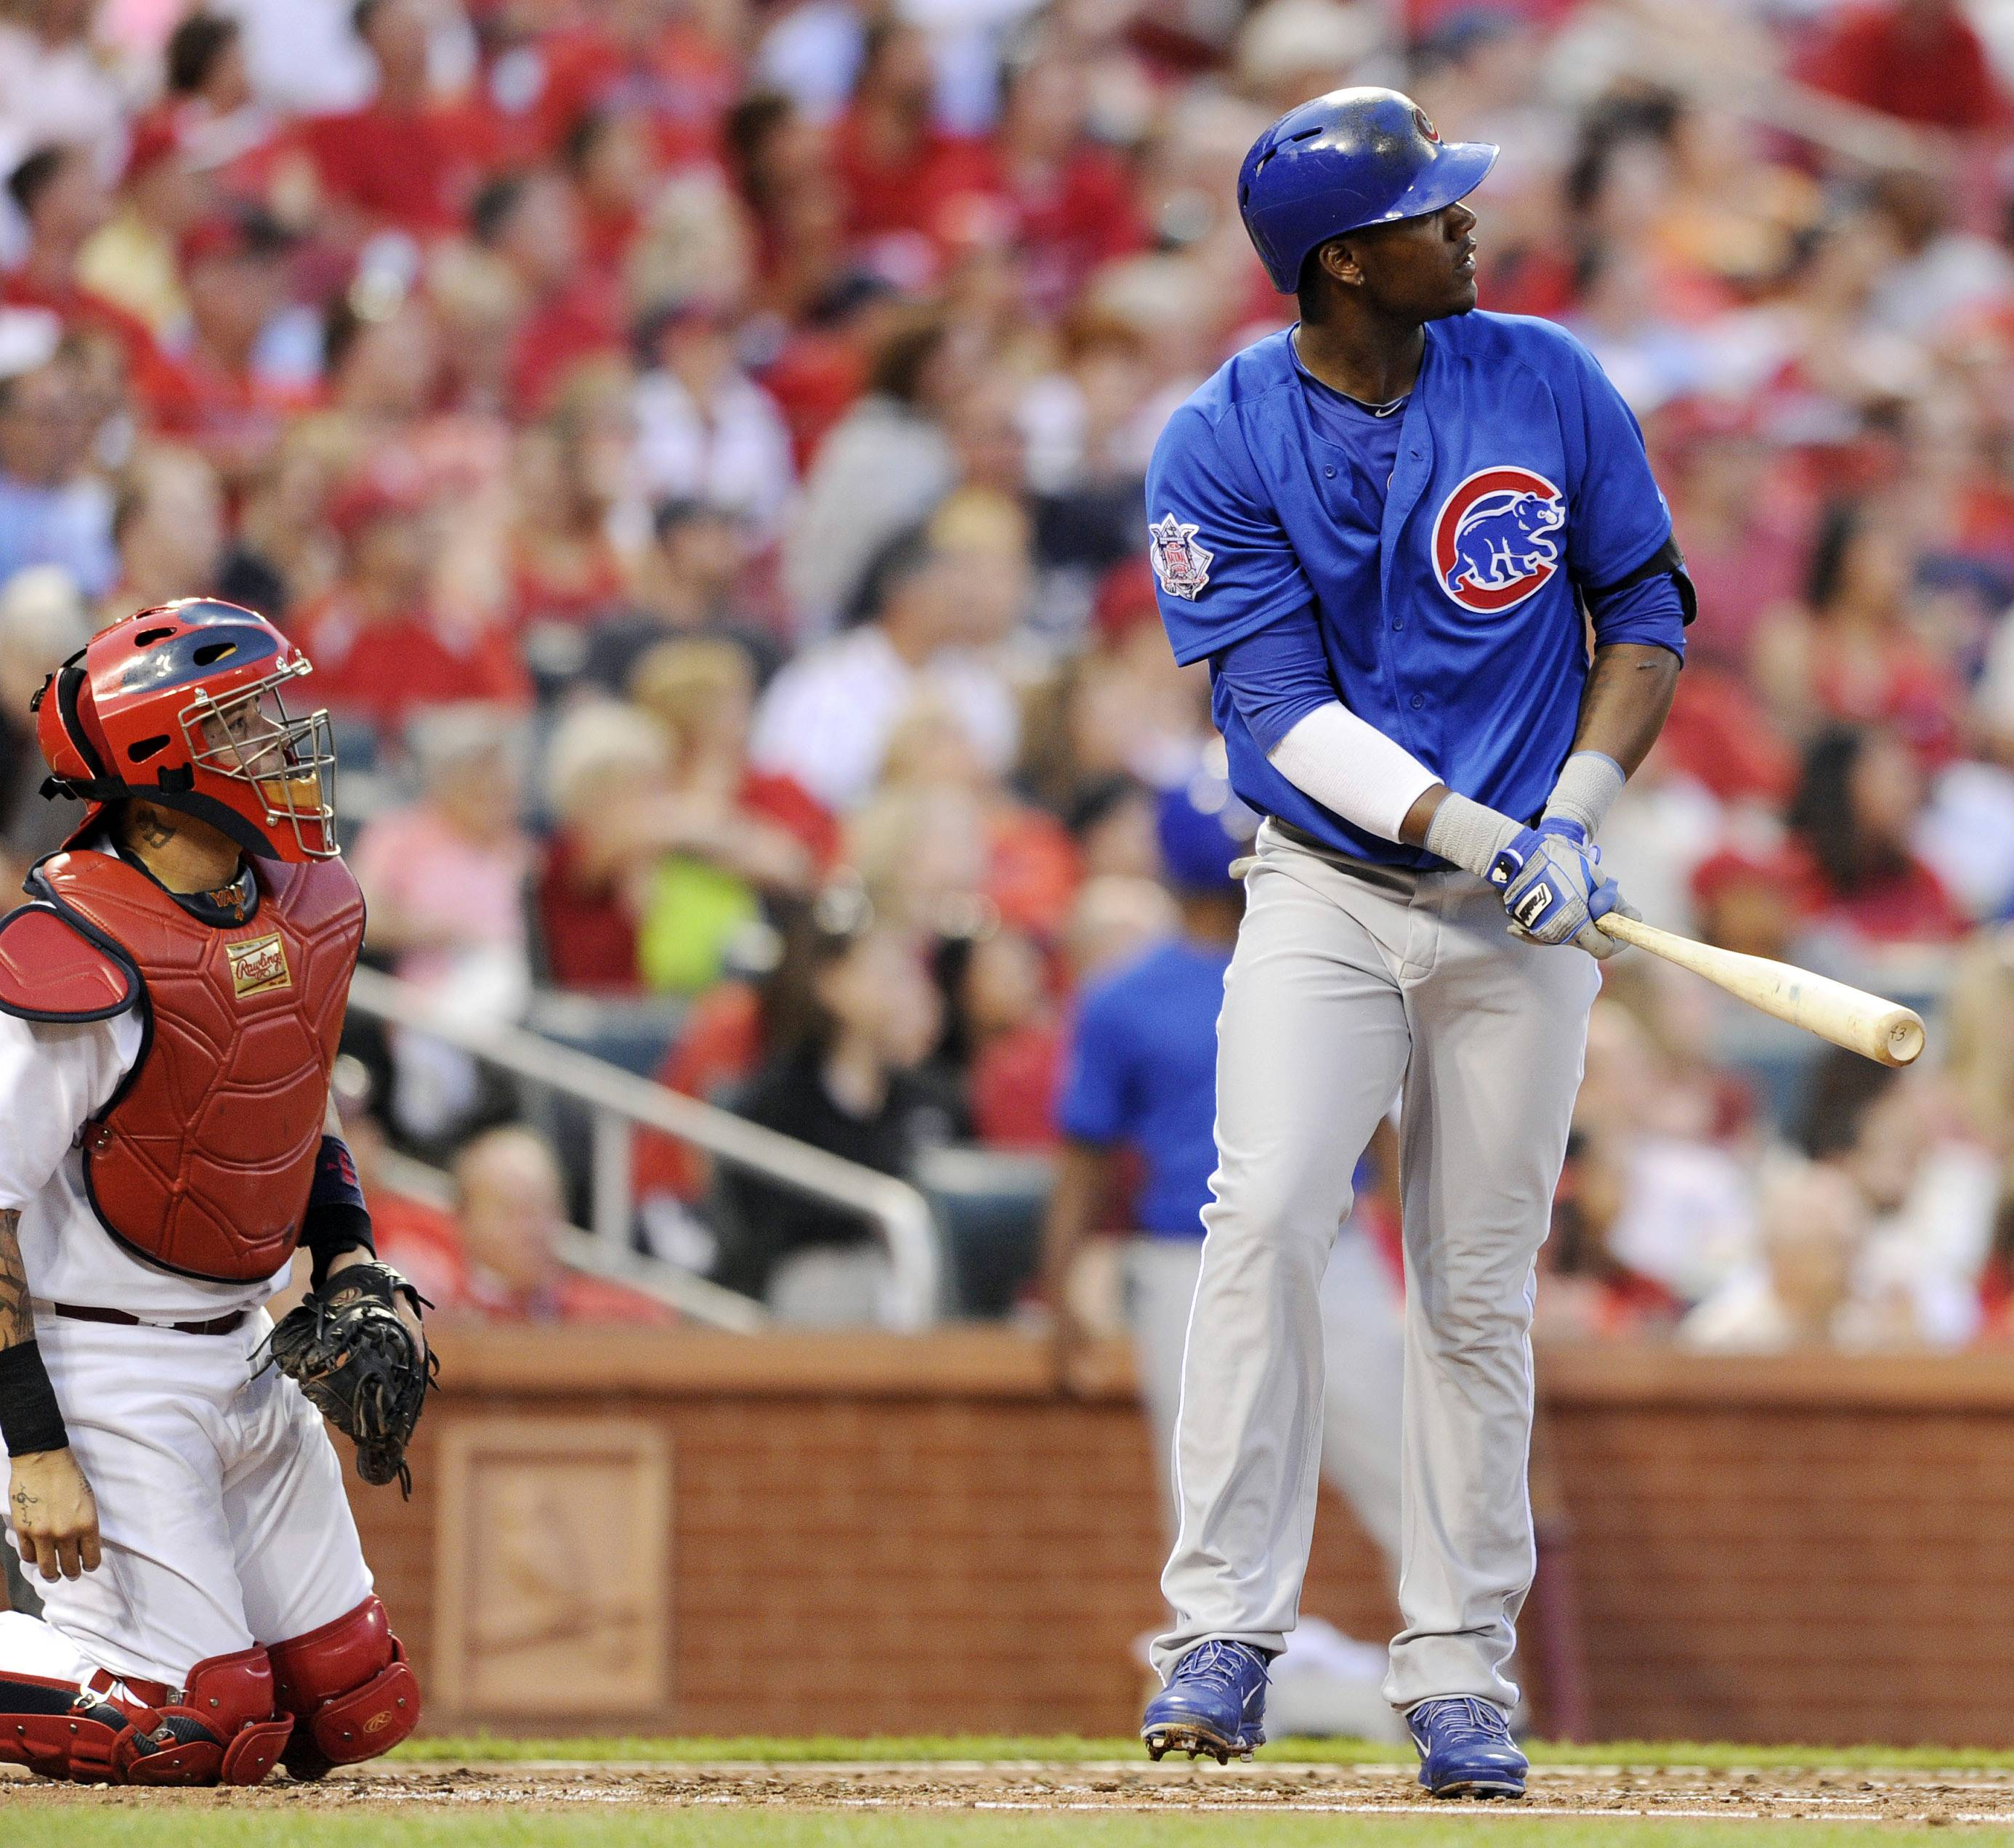 The Cubs' Junior Lake watches his 3-run homer as Cardinals catcher Yadier Molina looks on in the second inning Monday night. Lake finished with 6 RBI.